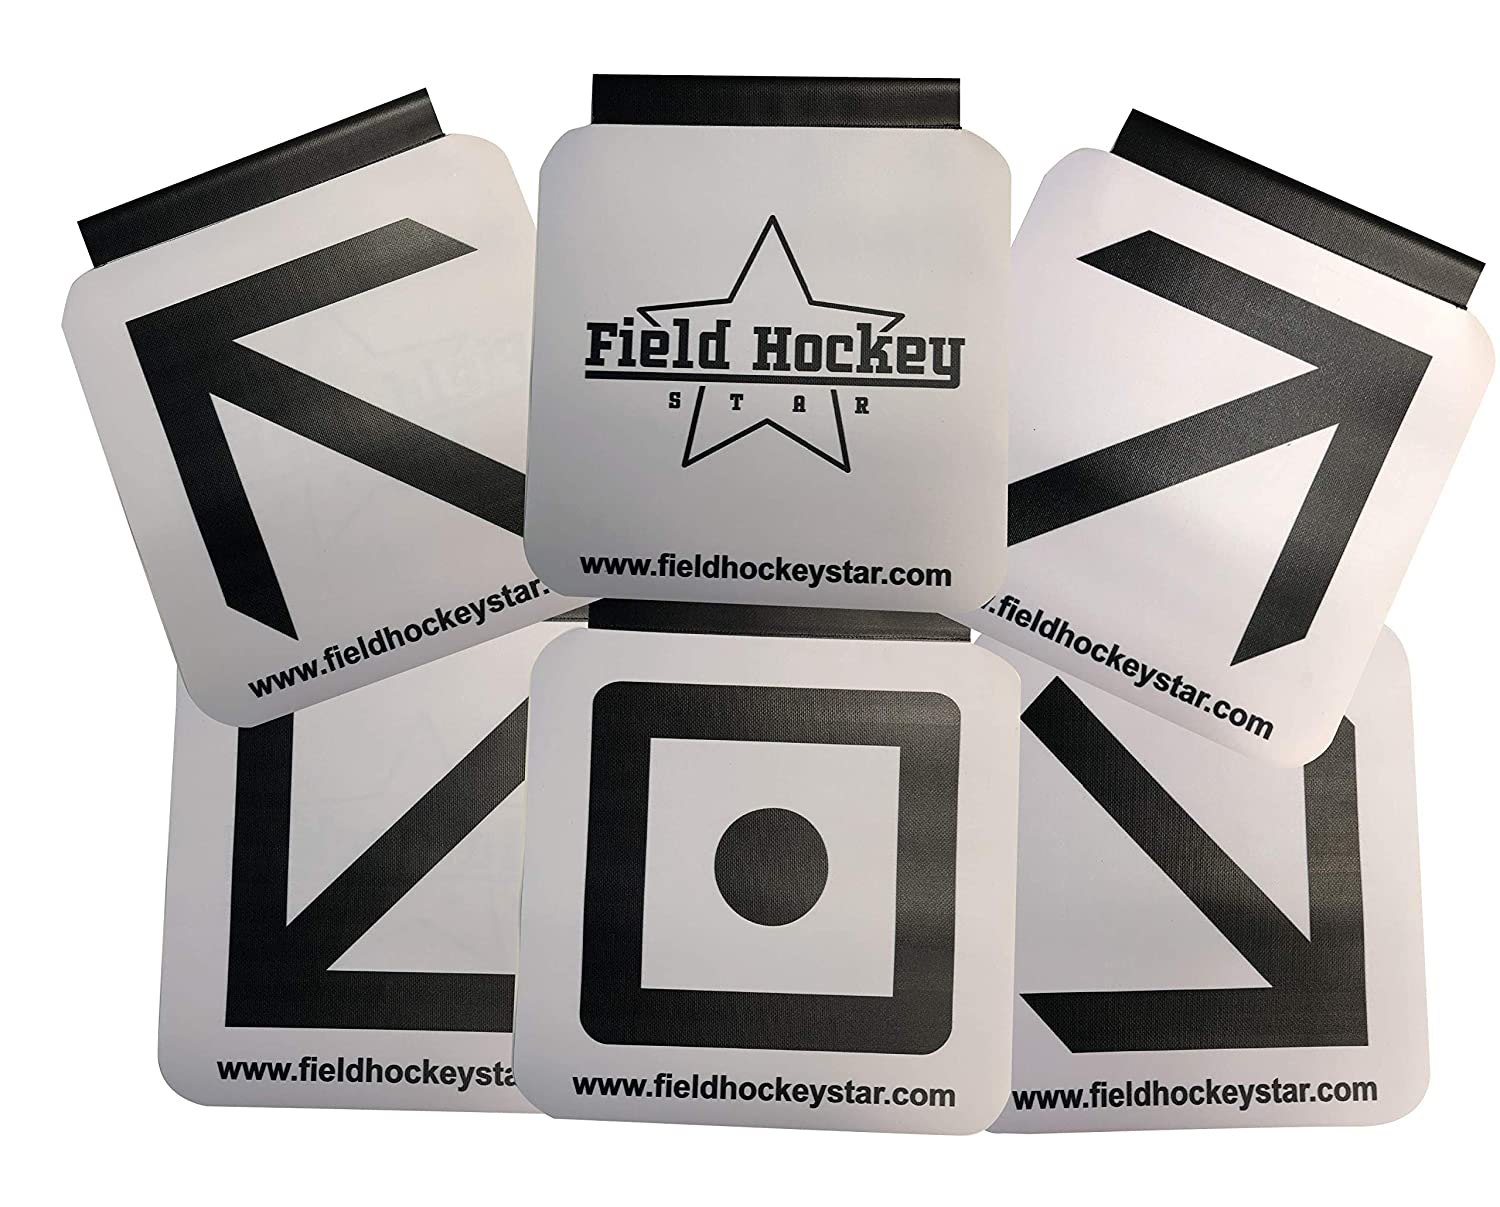 Field Hockey Star Sharp Shooting Training Aid - Goal Targets for Field Hockey and Floorball